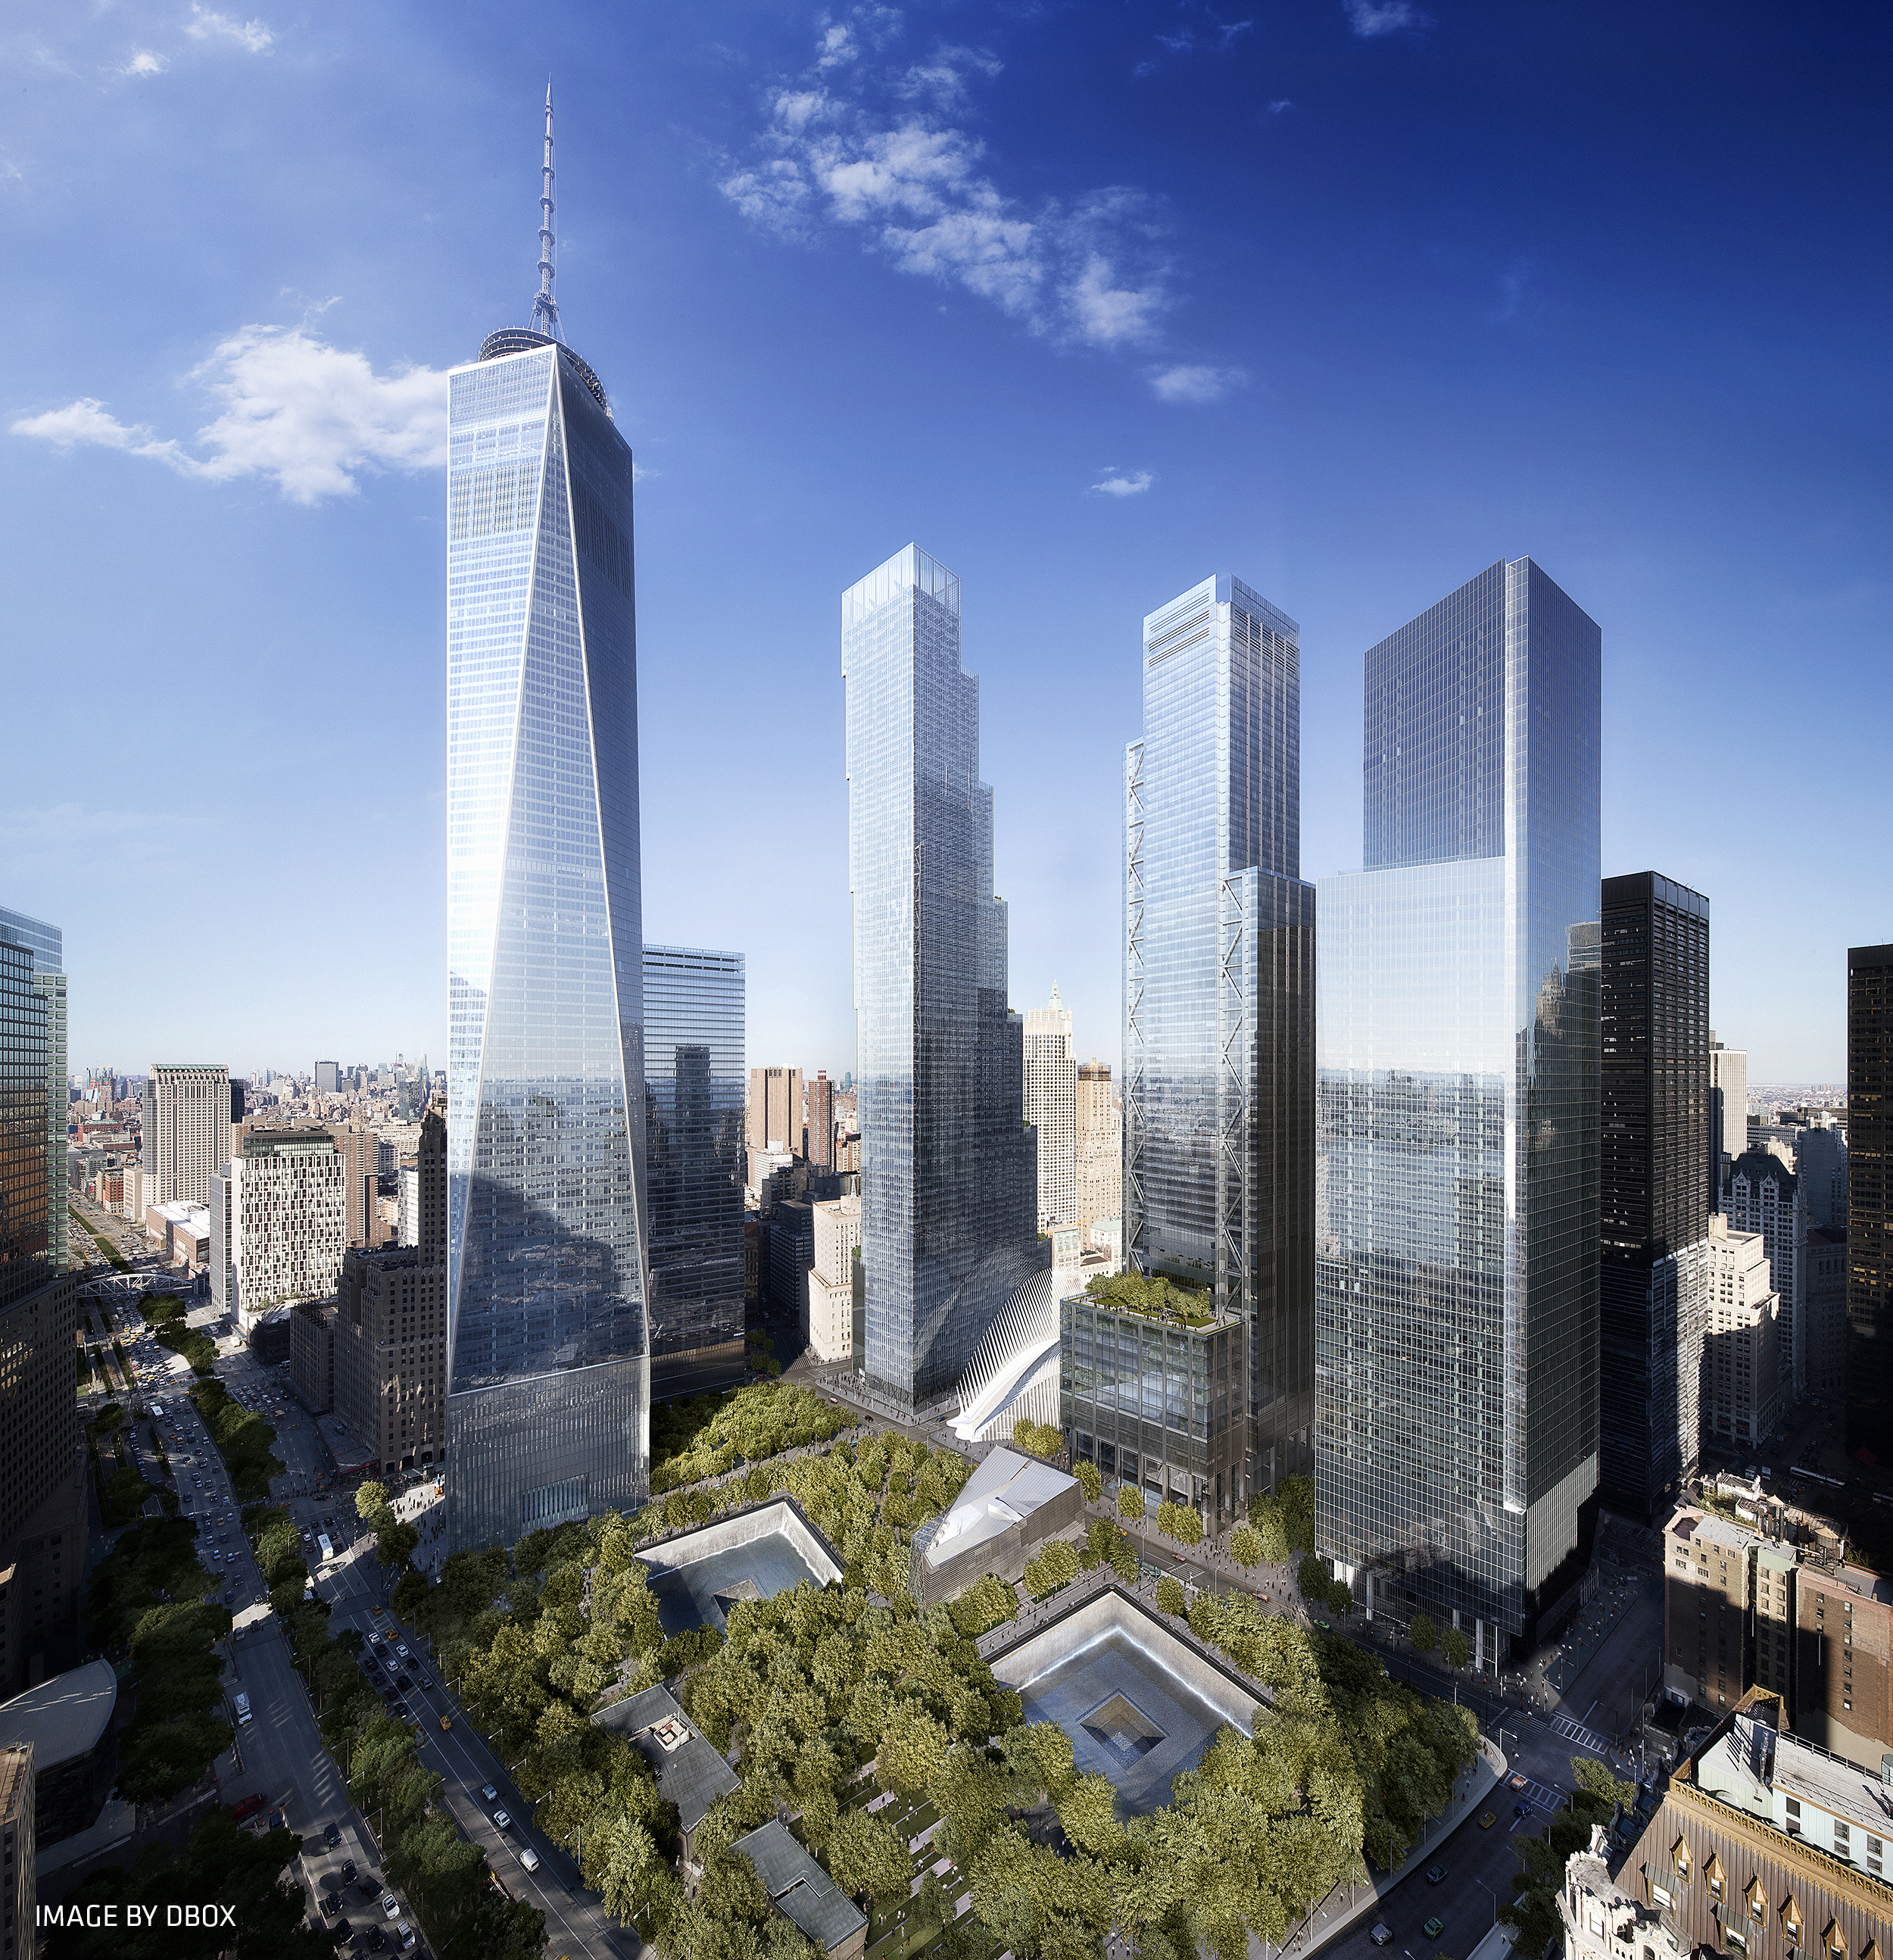 Rendering of the completed office towers of the World Trade Center. Credit: DBOX